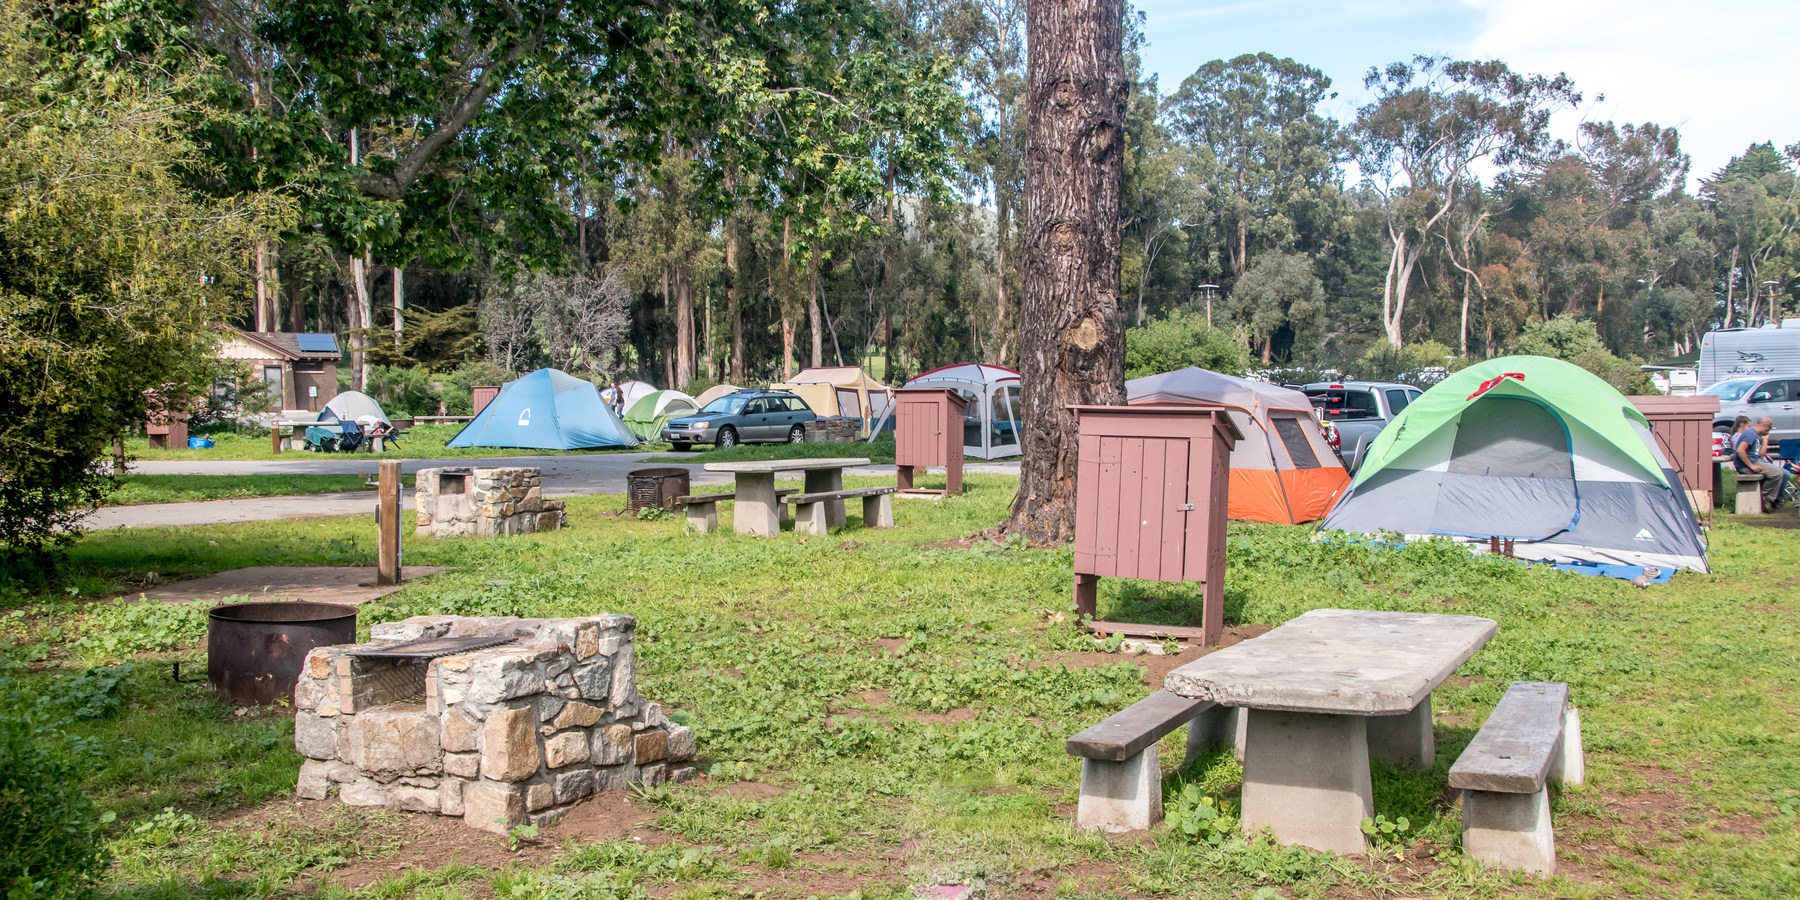 ... The c&ground is popular with tent c&ers.- Morro Bay State Park C&ground ... & Morro Bay State Park Campground | Outdoor Project